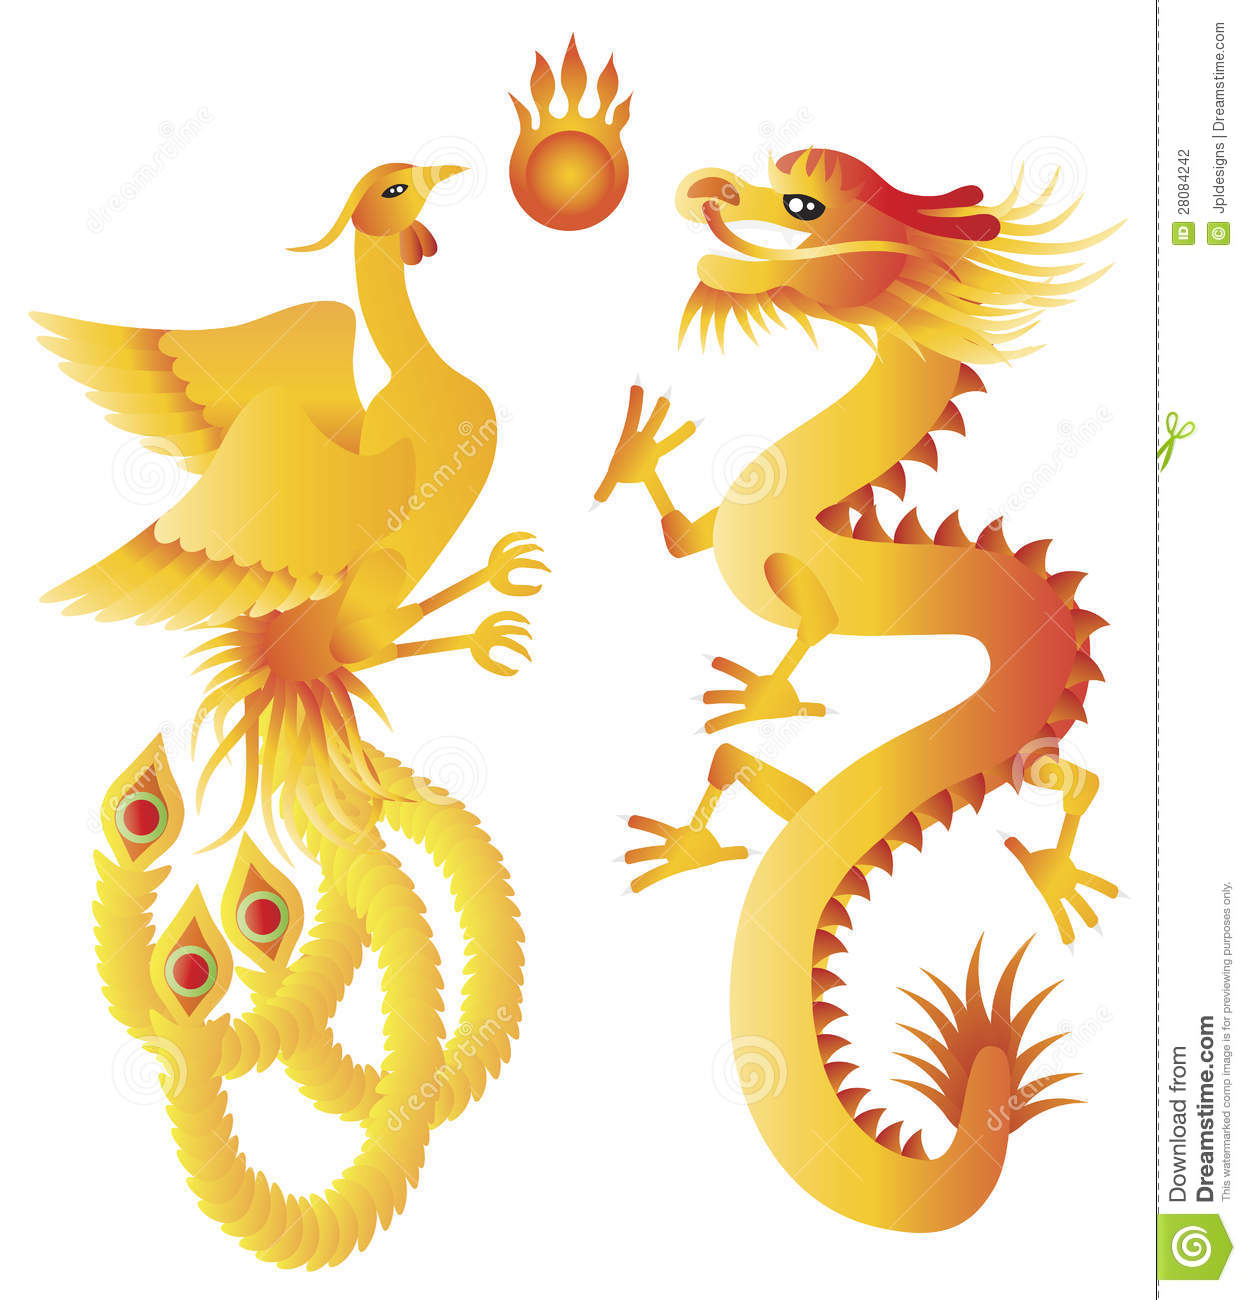 Dragon and phoenix chinese symbols illustration stock vector dragon and phoenix chinese symbols illustration biocorpaavc